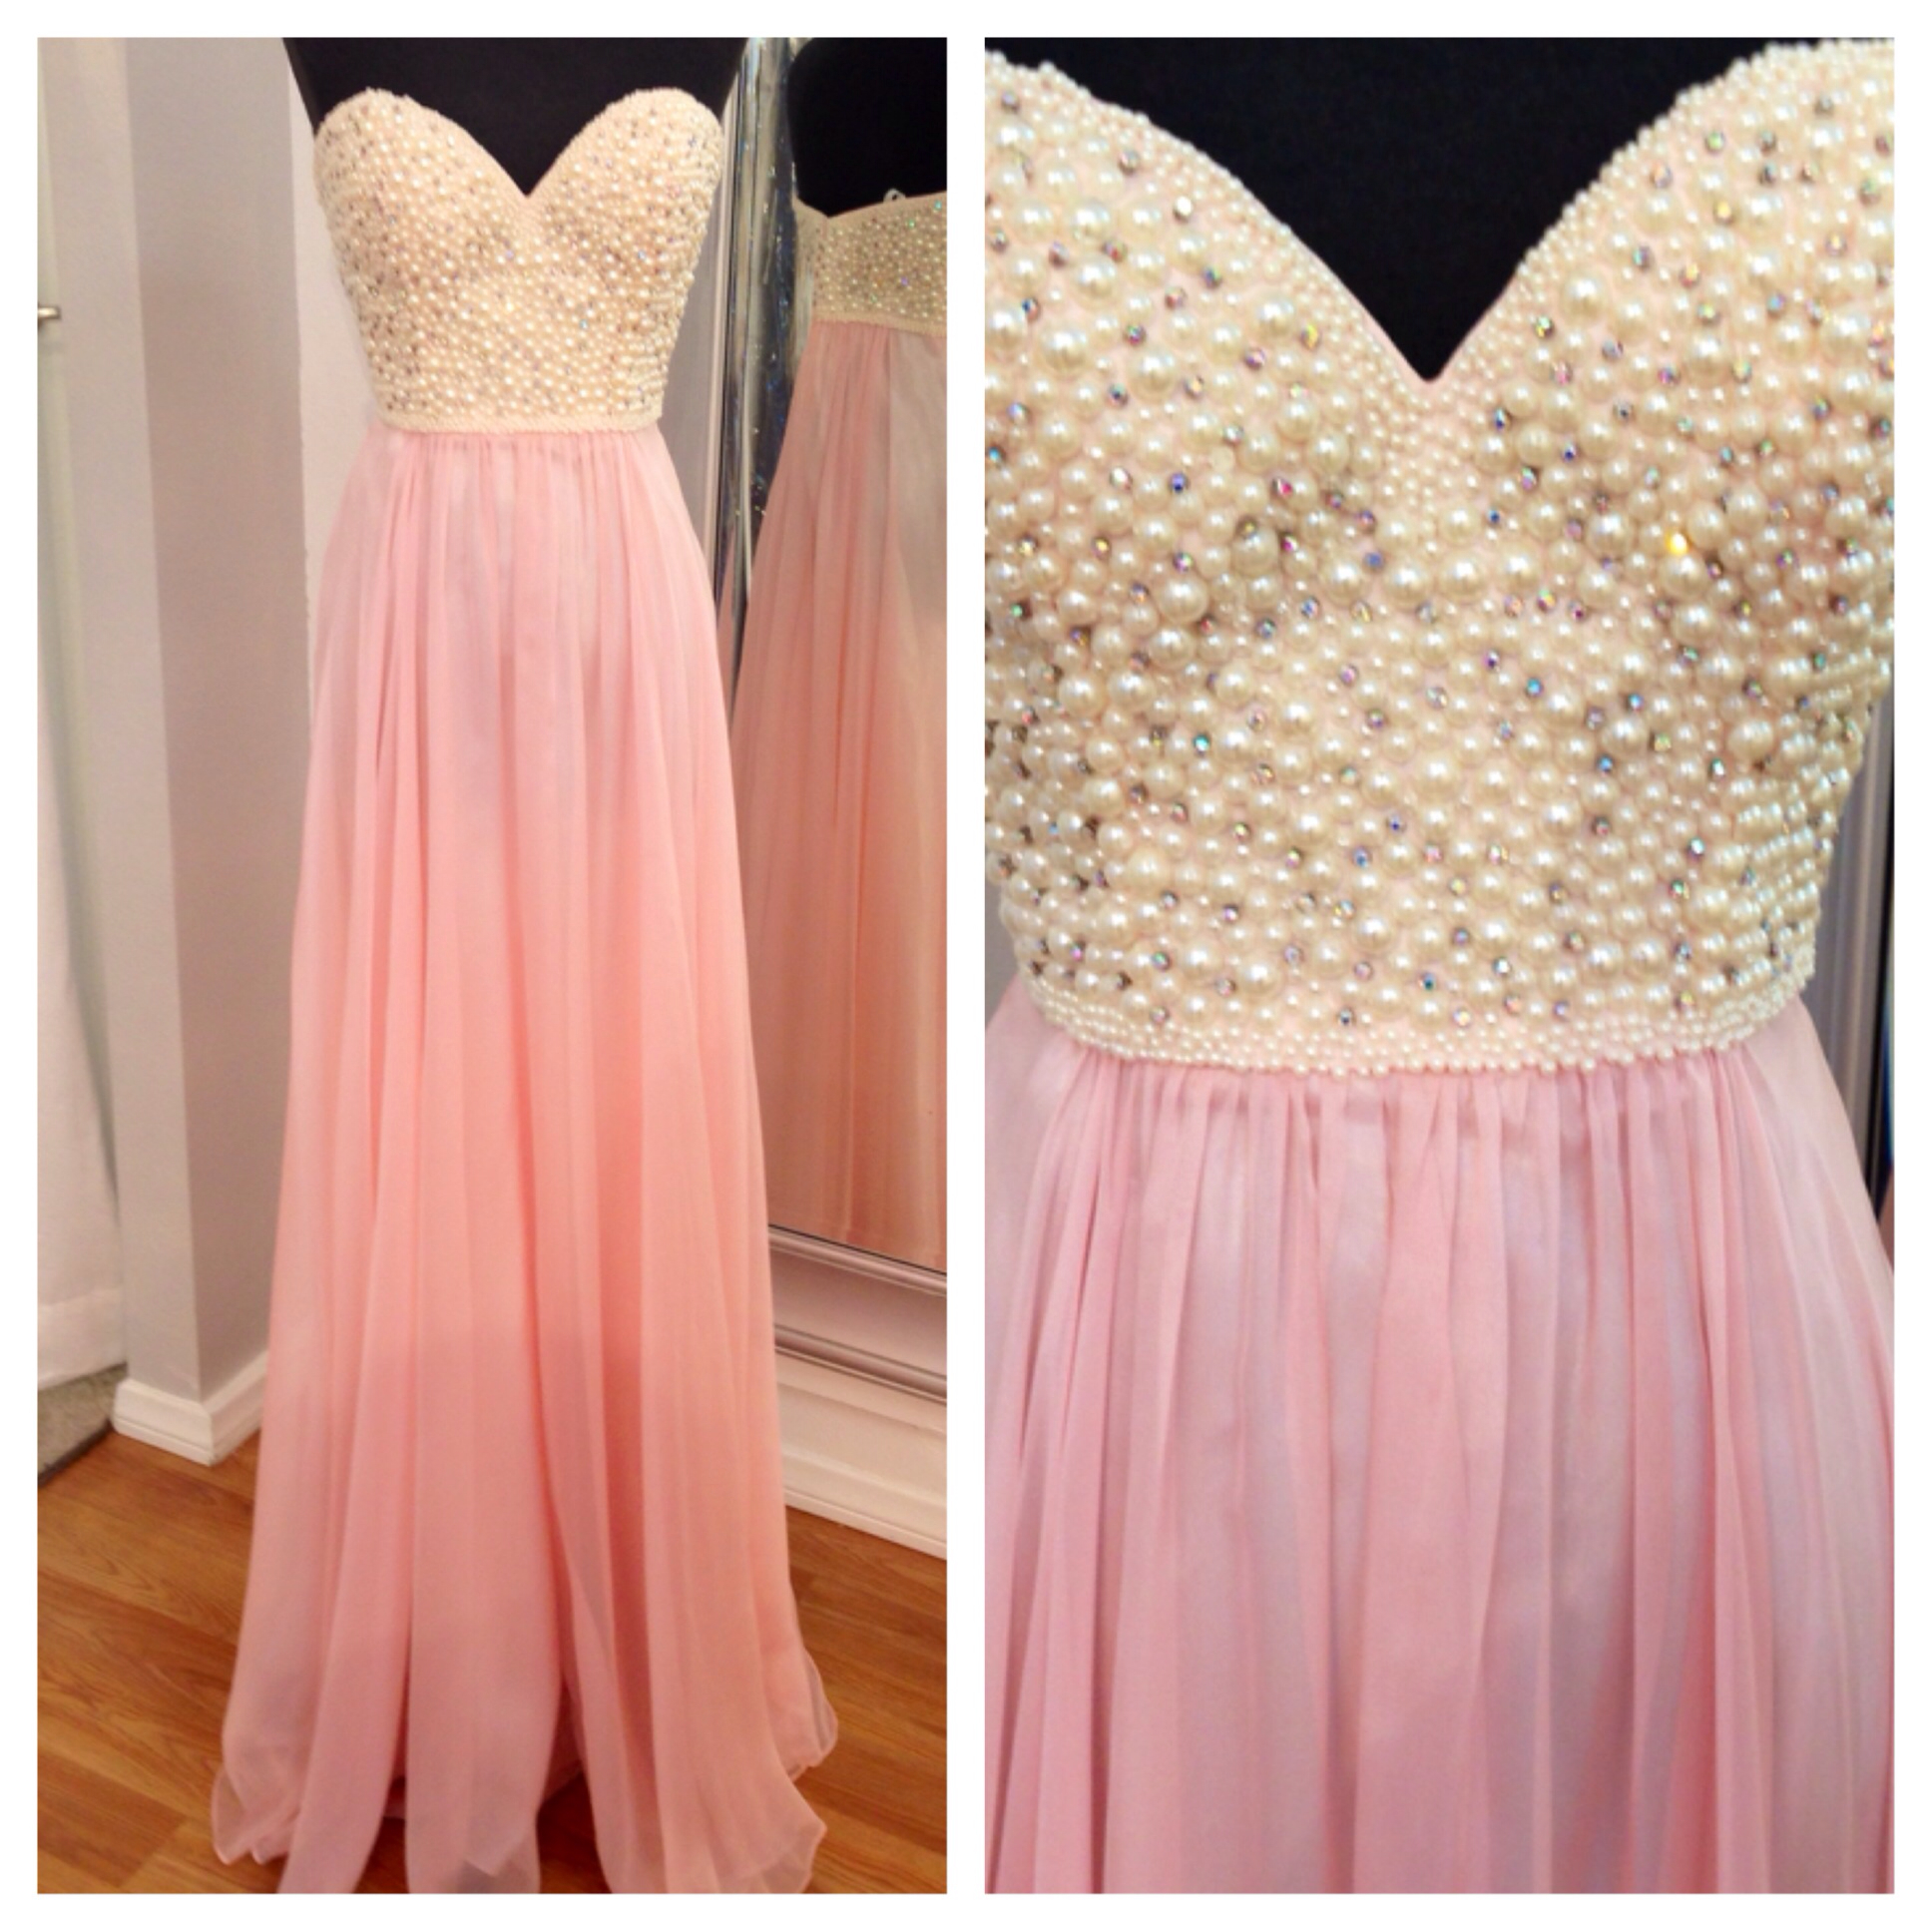 This will be my prom dress promhoco pinterest prom